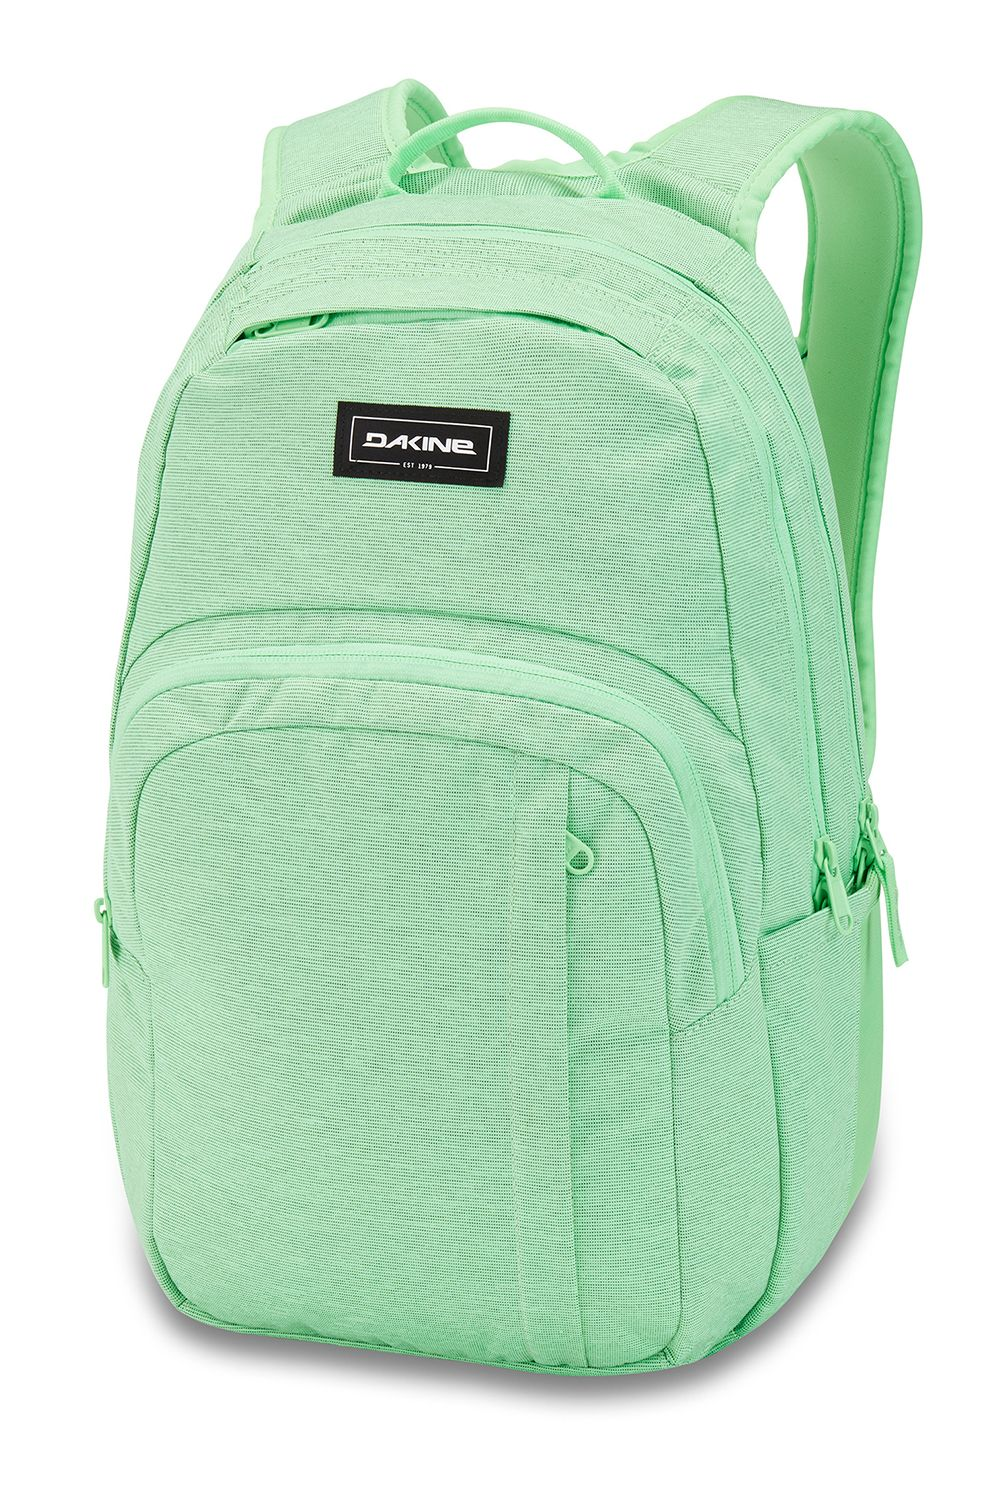 Mochila Dakine CAMPUS M 25L Dusty Mint